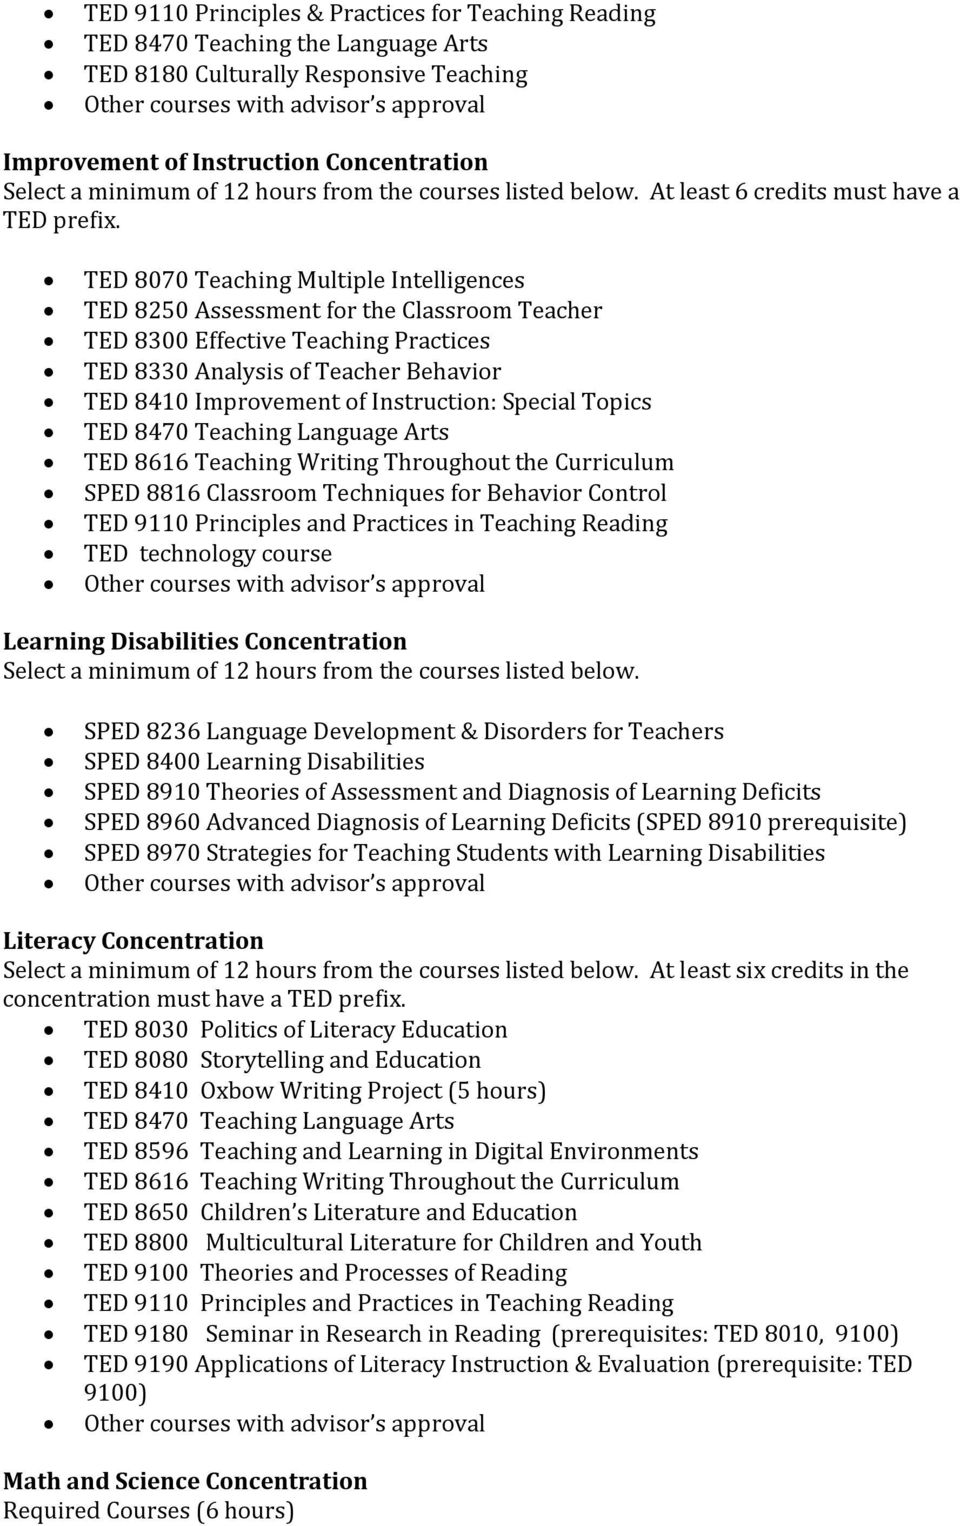 TED 8070 Teaching Multiple Intelligences TED 8250 Assessment for the Classroom Teacher TED 8300 Effective Teaching Practices TED 8330 Analysis of Teacher Behavior TED 8410 Improvement of Instruction: